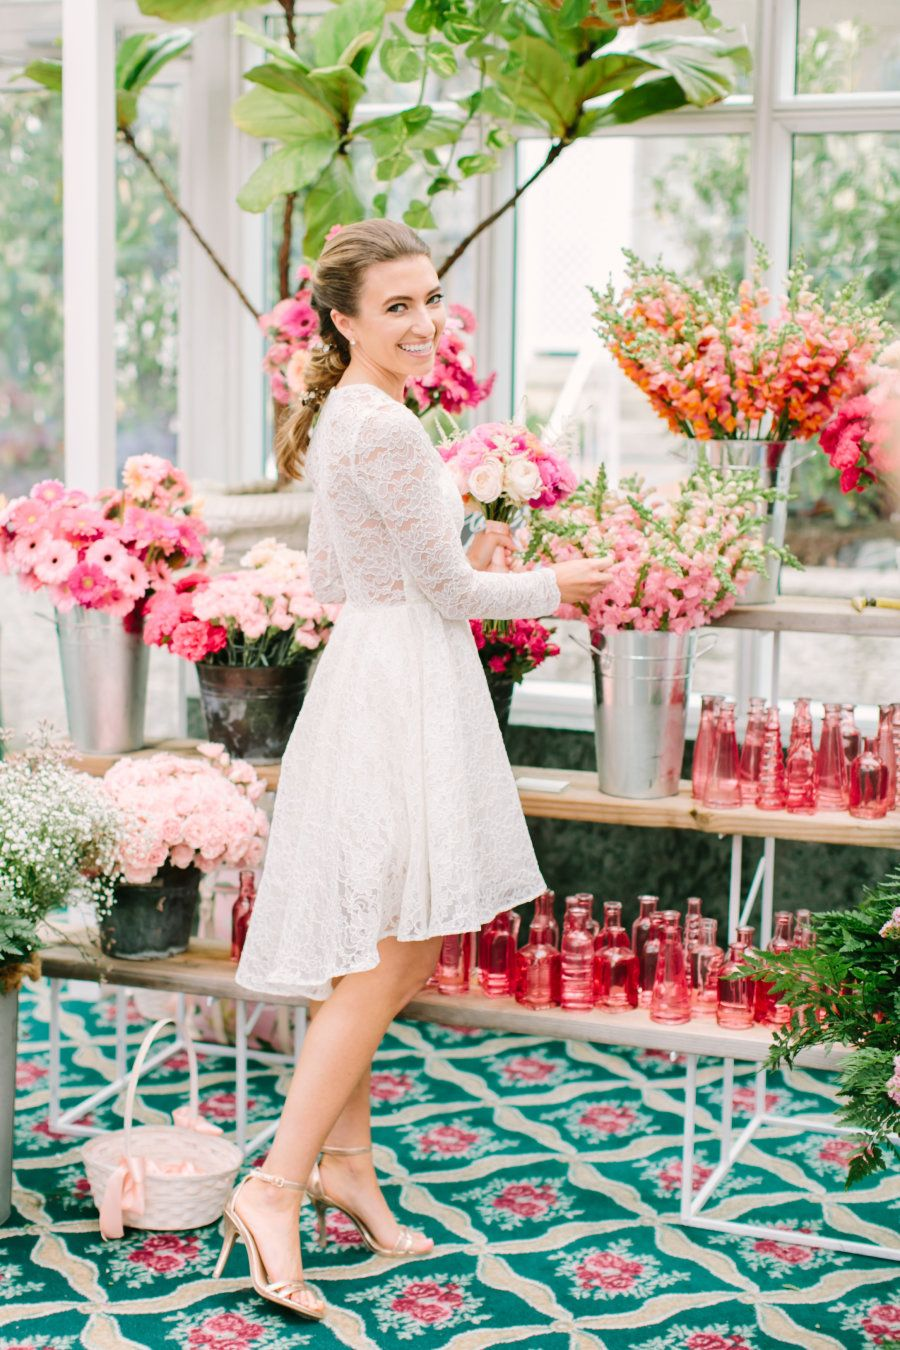 Why flower bars are the new it bridal shower detail beautiful photography love light photographs read more on smp httpstylemepretty20160531why flower bars are the new it bridal shower detail izmirmasajfo